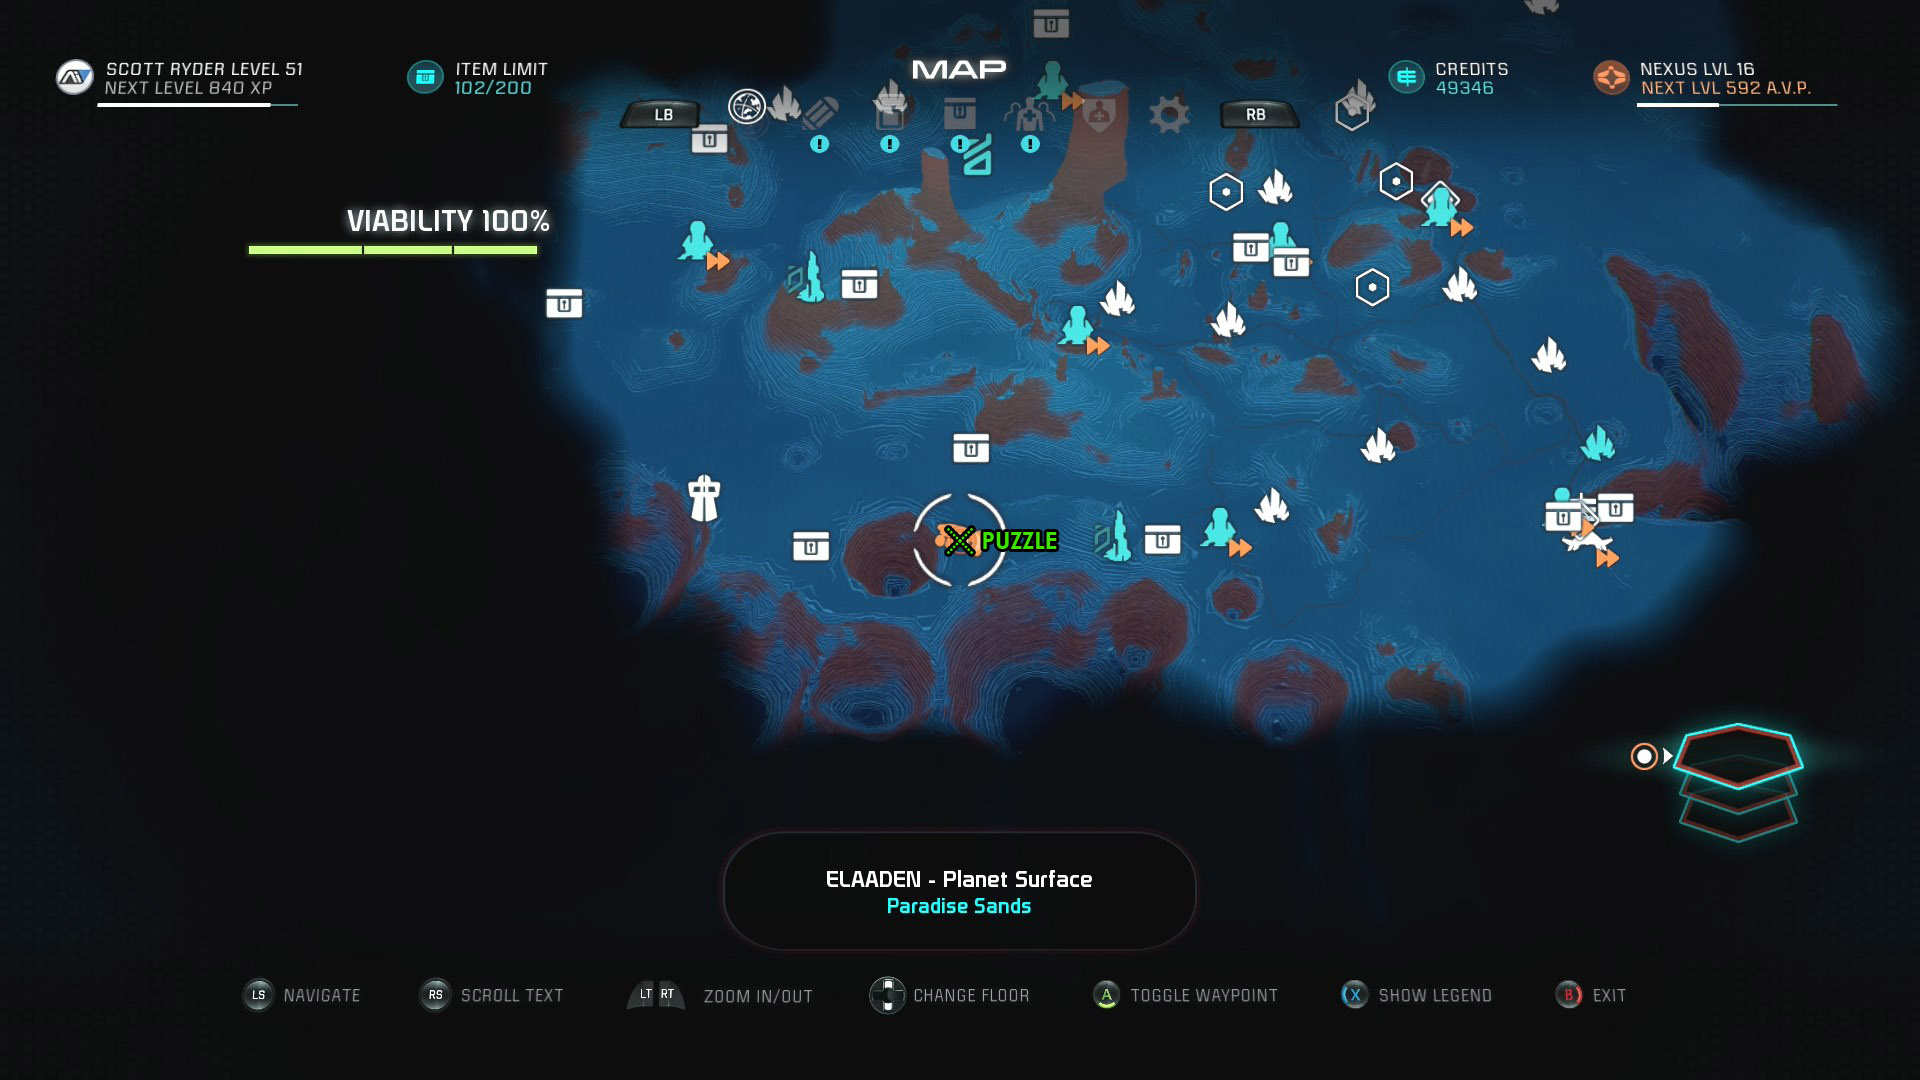 Mass Effect Andromeda Remnant Decryption Puzzle Location - Elaaden - Free Roam